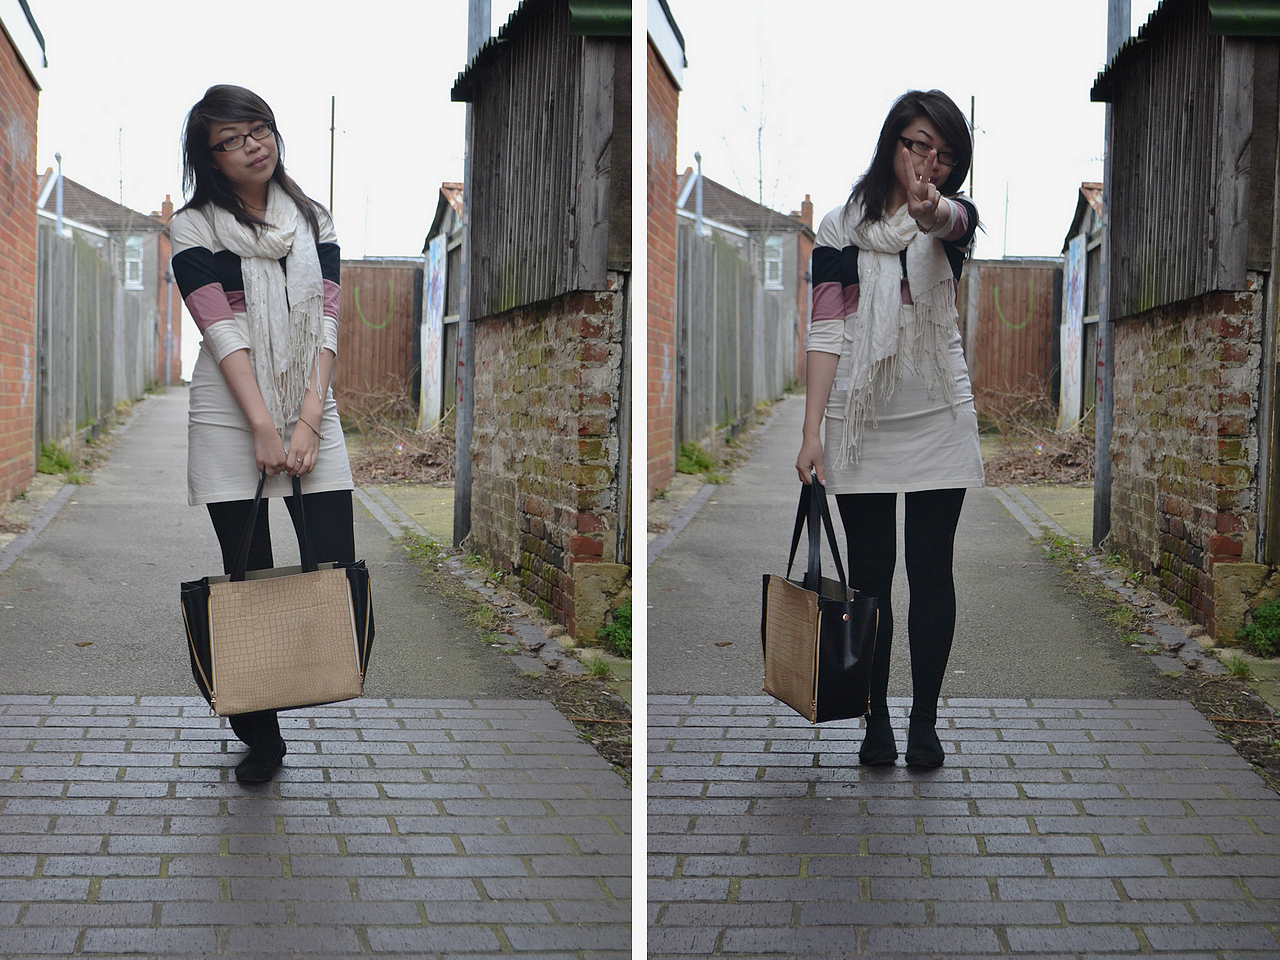 daisybutter - UK Style Blog: what i wore, style diary, annie greenabelle, ss12, scarf, fashion blogger, fairtrade fortnight